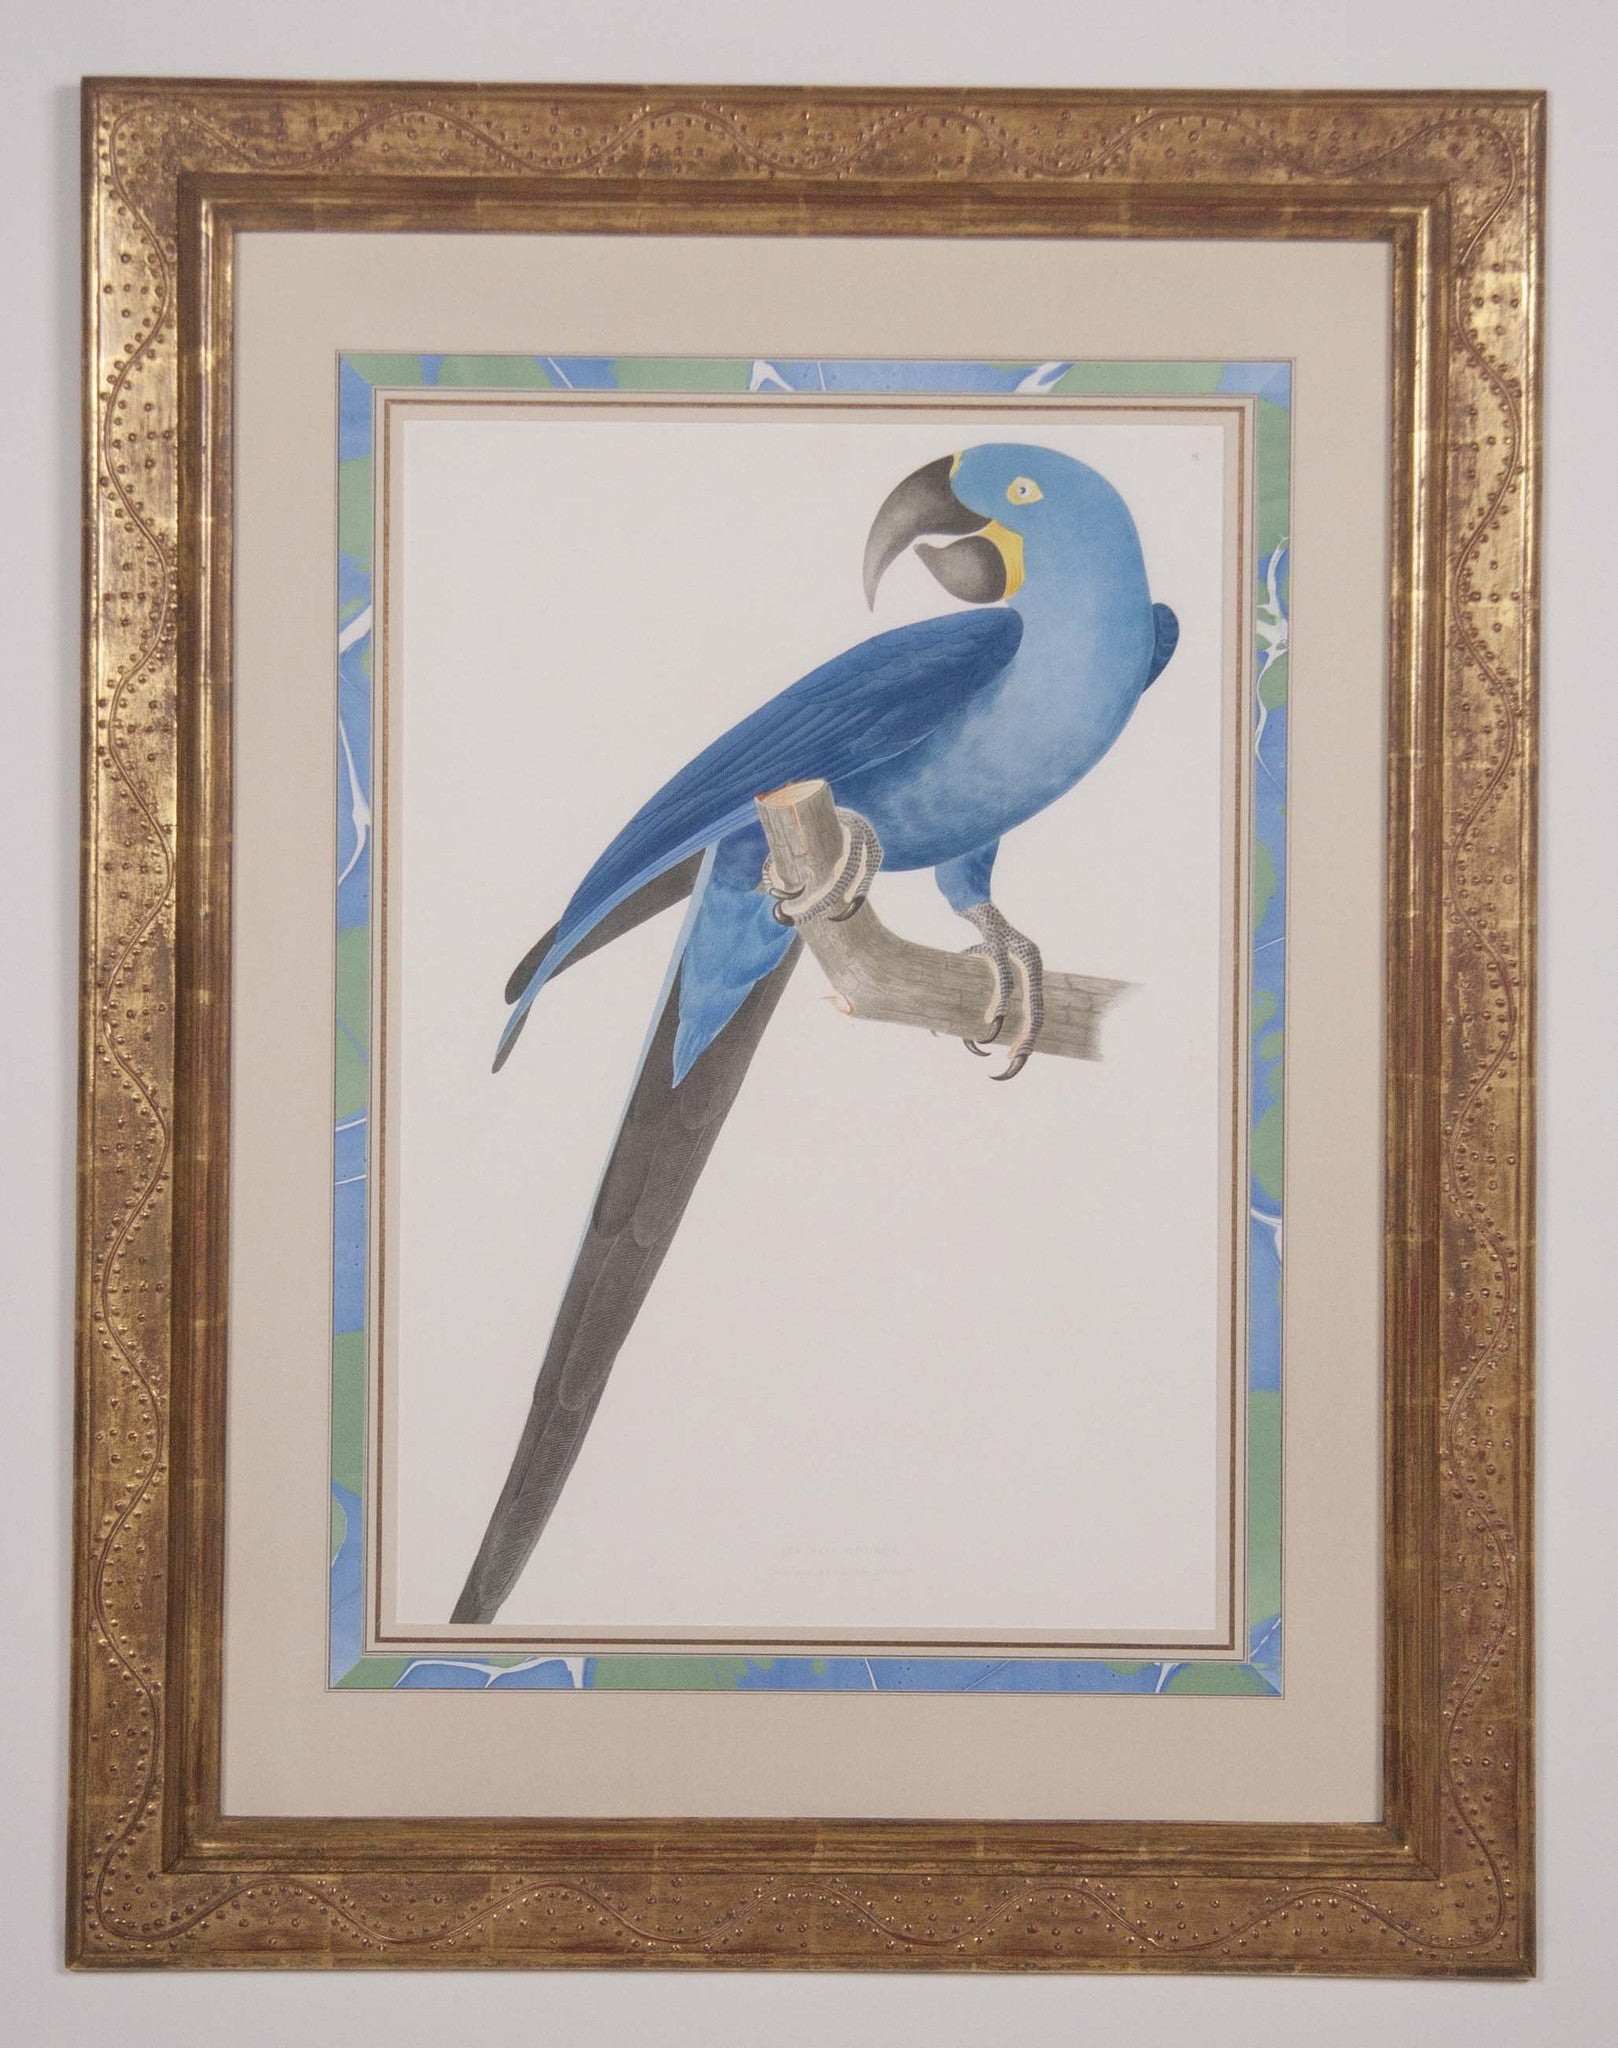 Folio Chromolithograph of a Parrot after Jean Theodore Descourtilz